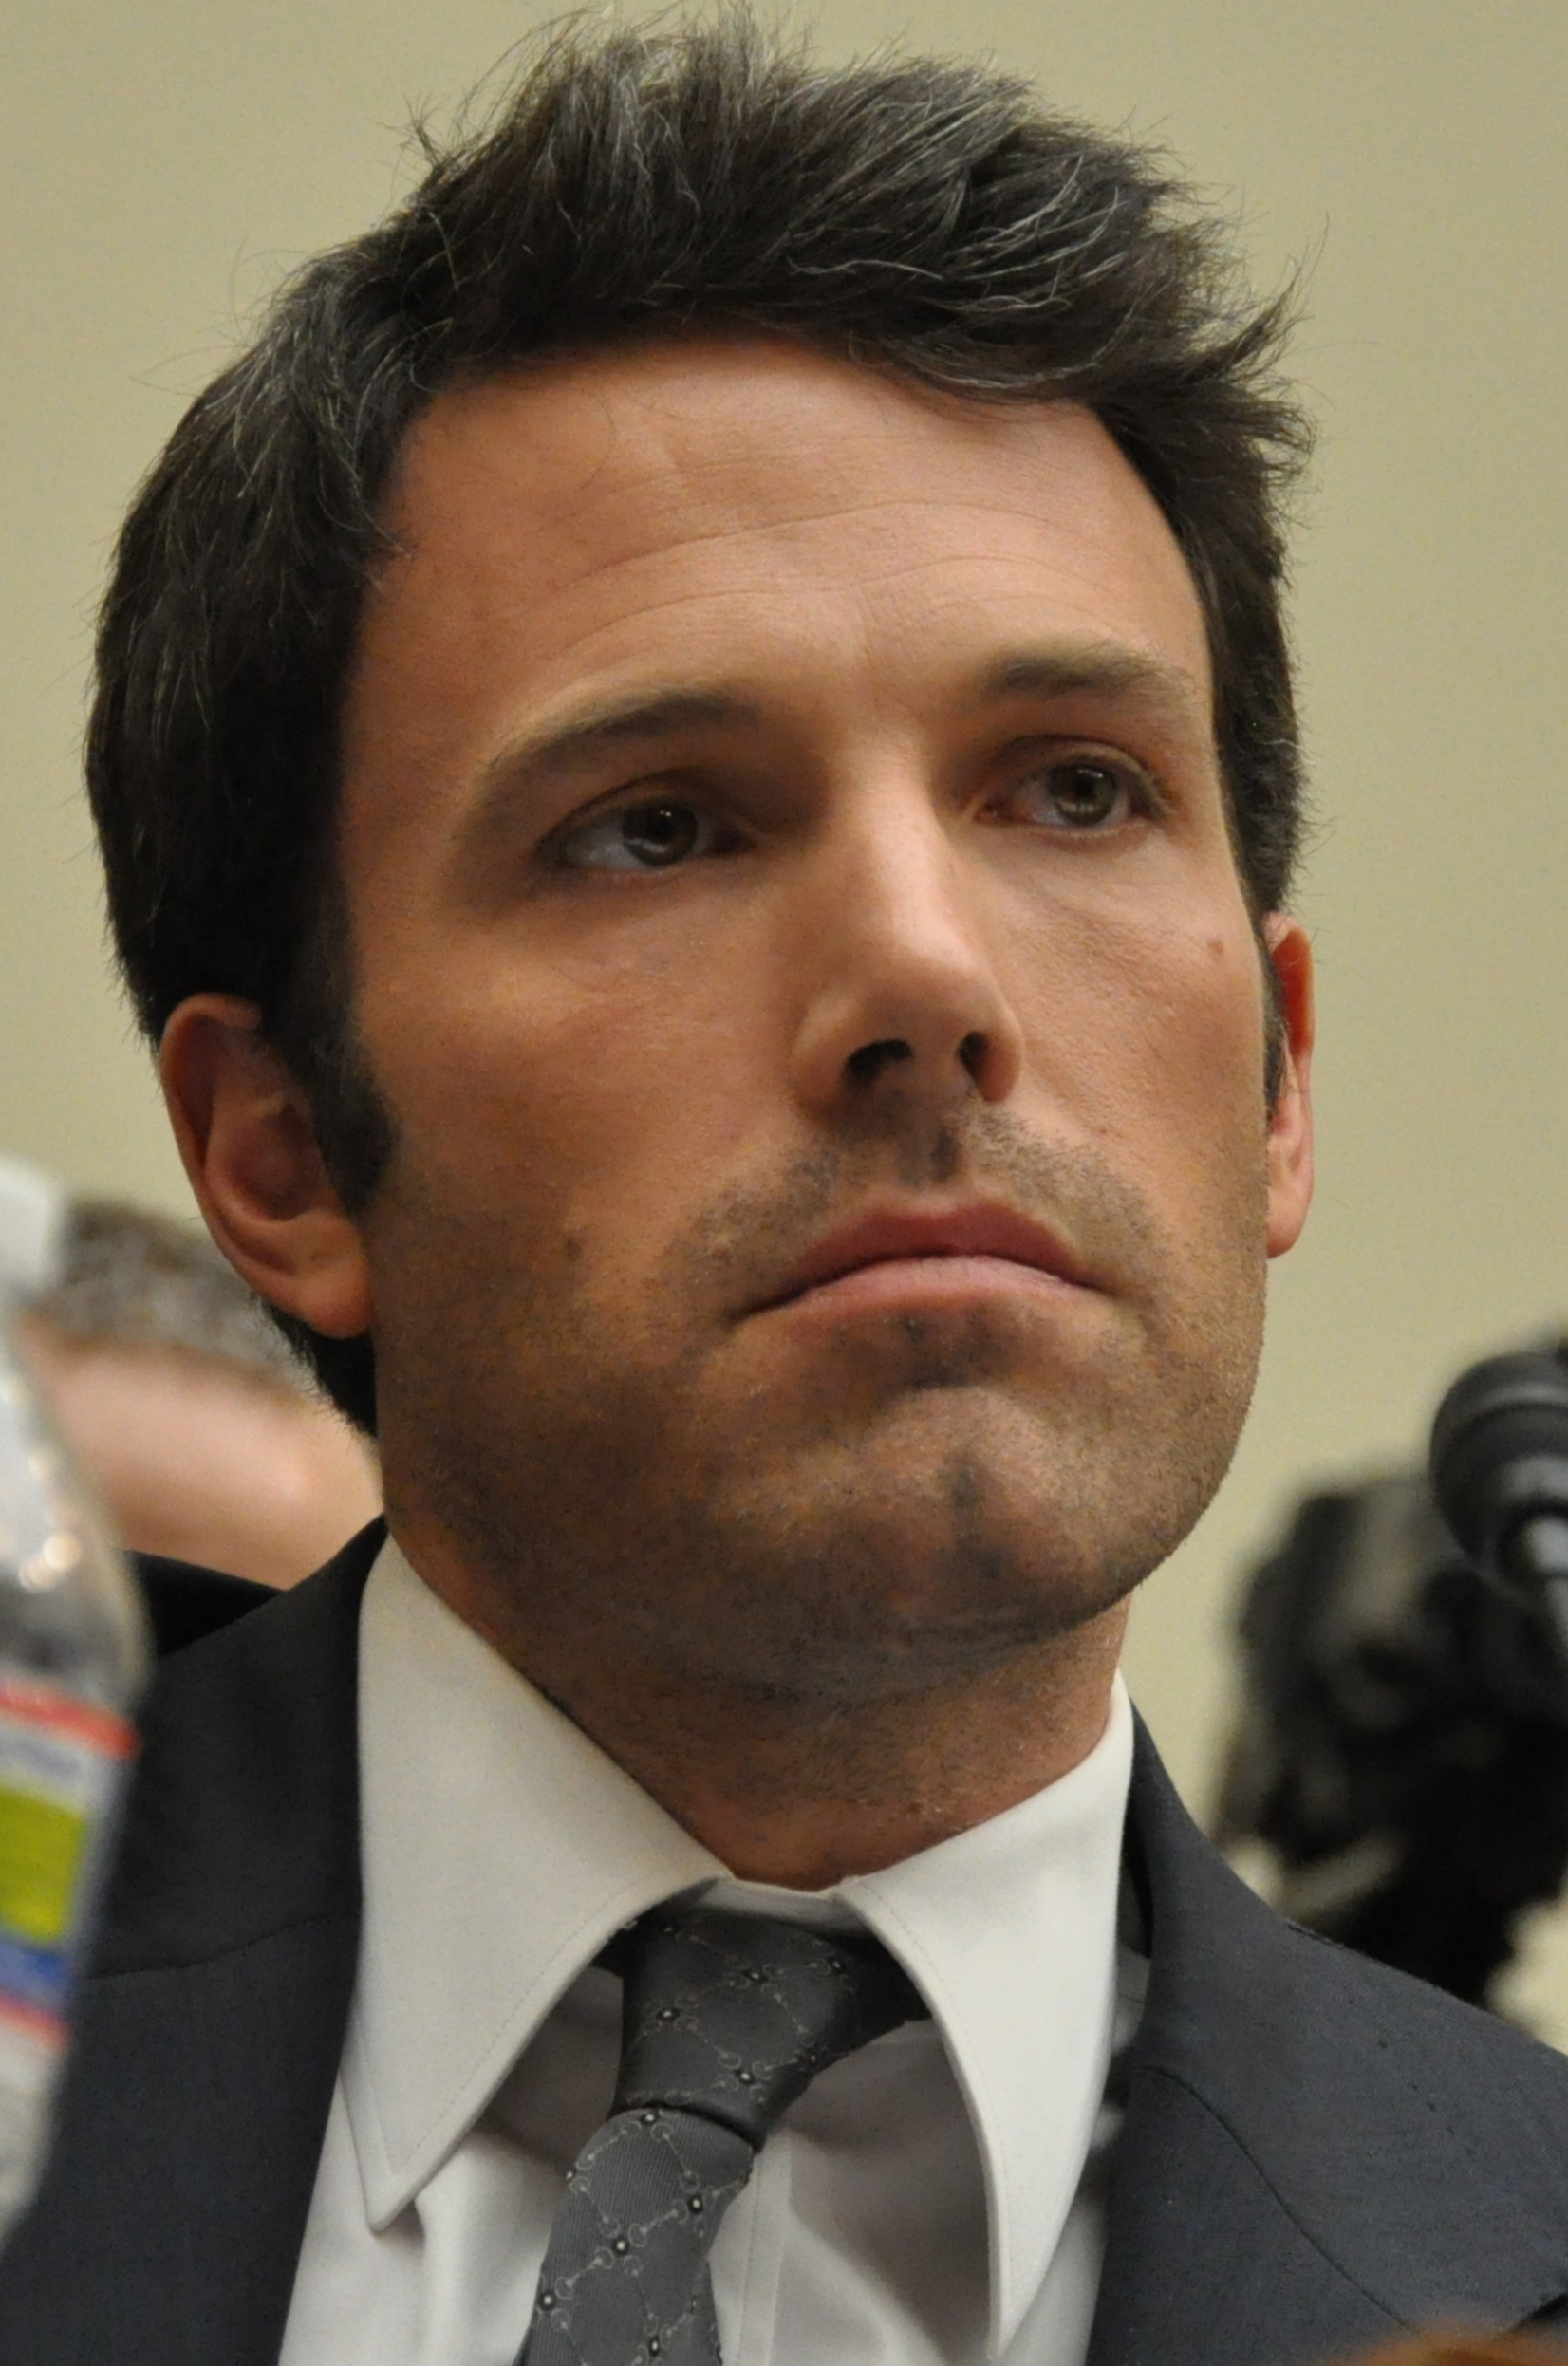 6 Things We Know About Ben Affleck's New Girlfriend Lindsay Shookus